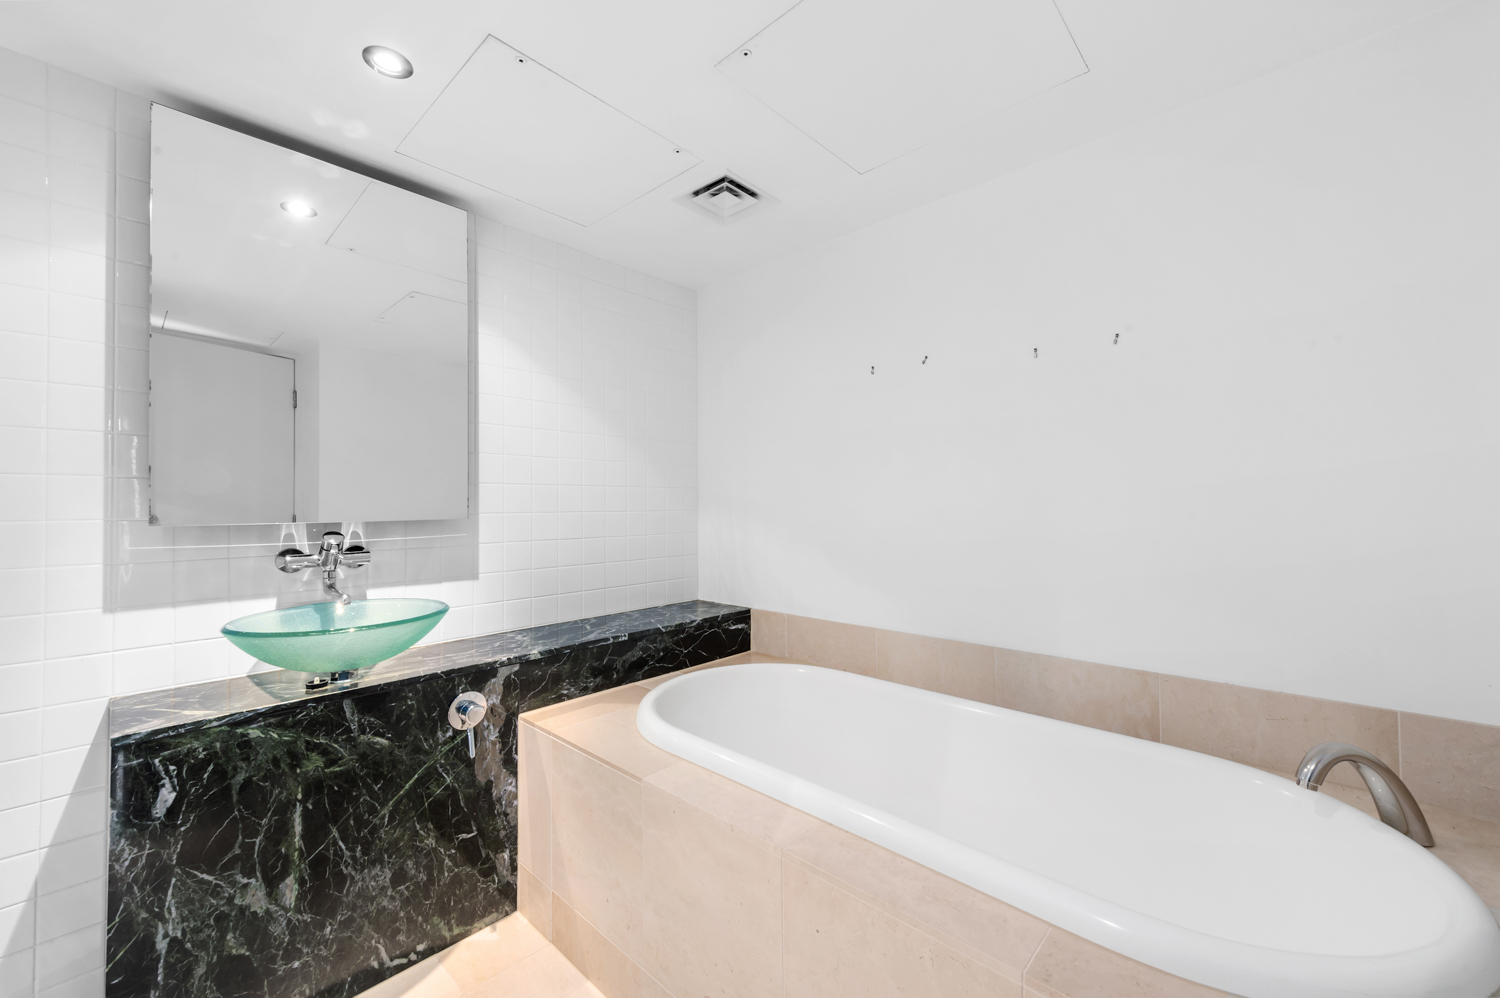 152-299-queen-street-melbourne-student-accommodation-Melbourne-Bathroom-2-Unilodgers